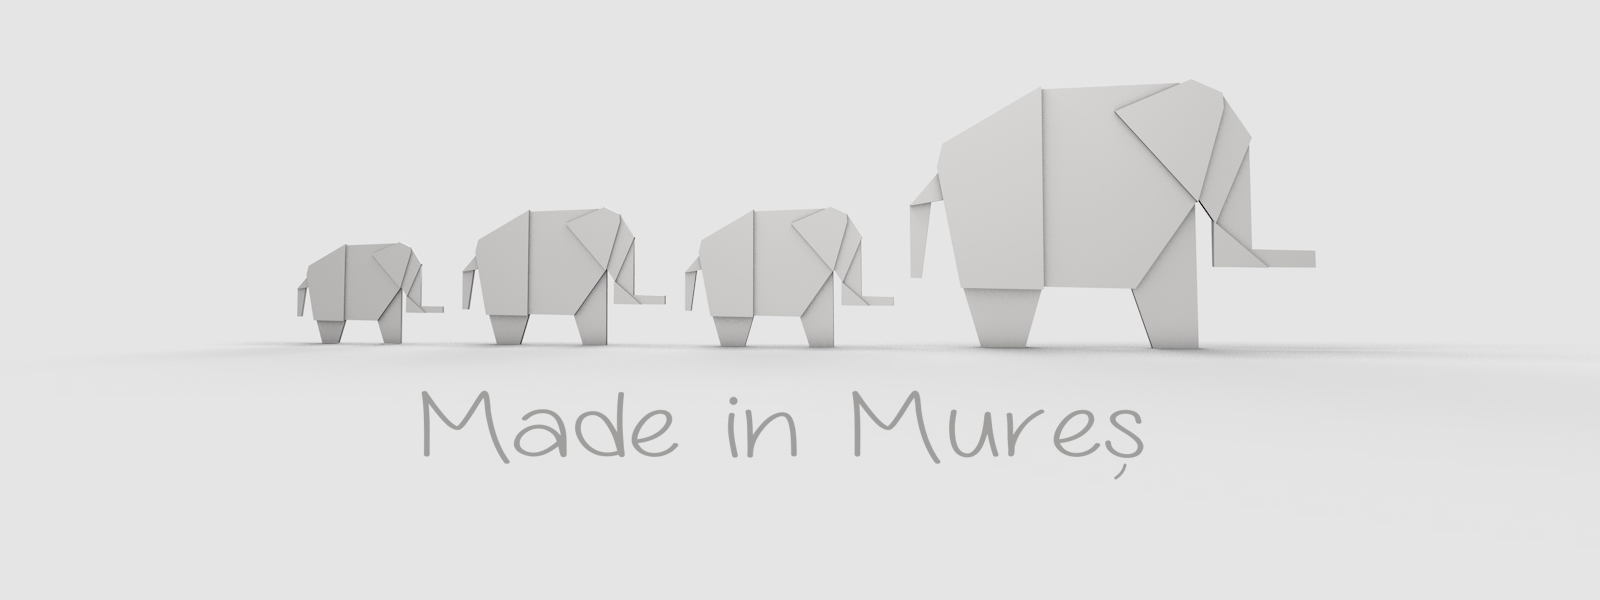 Lansare proiect Made in Mures